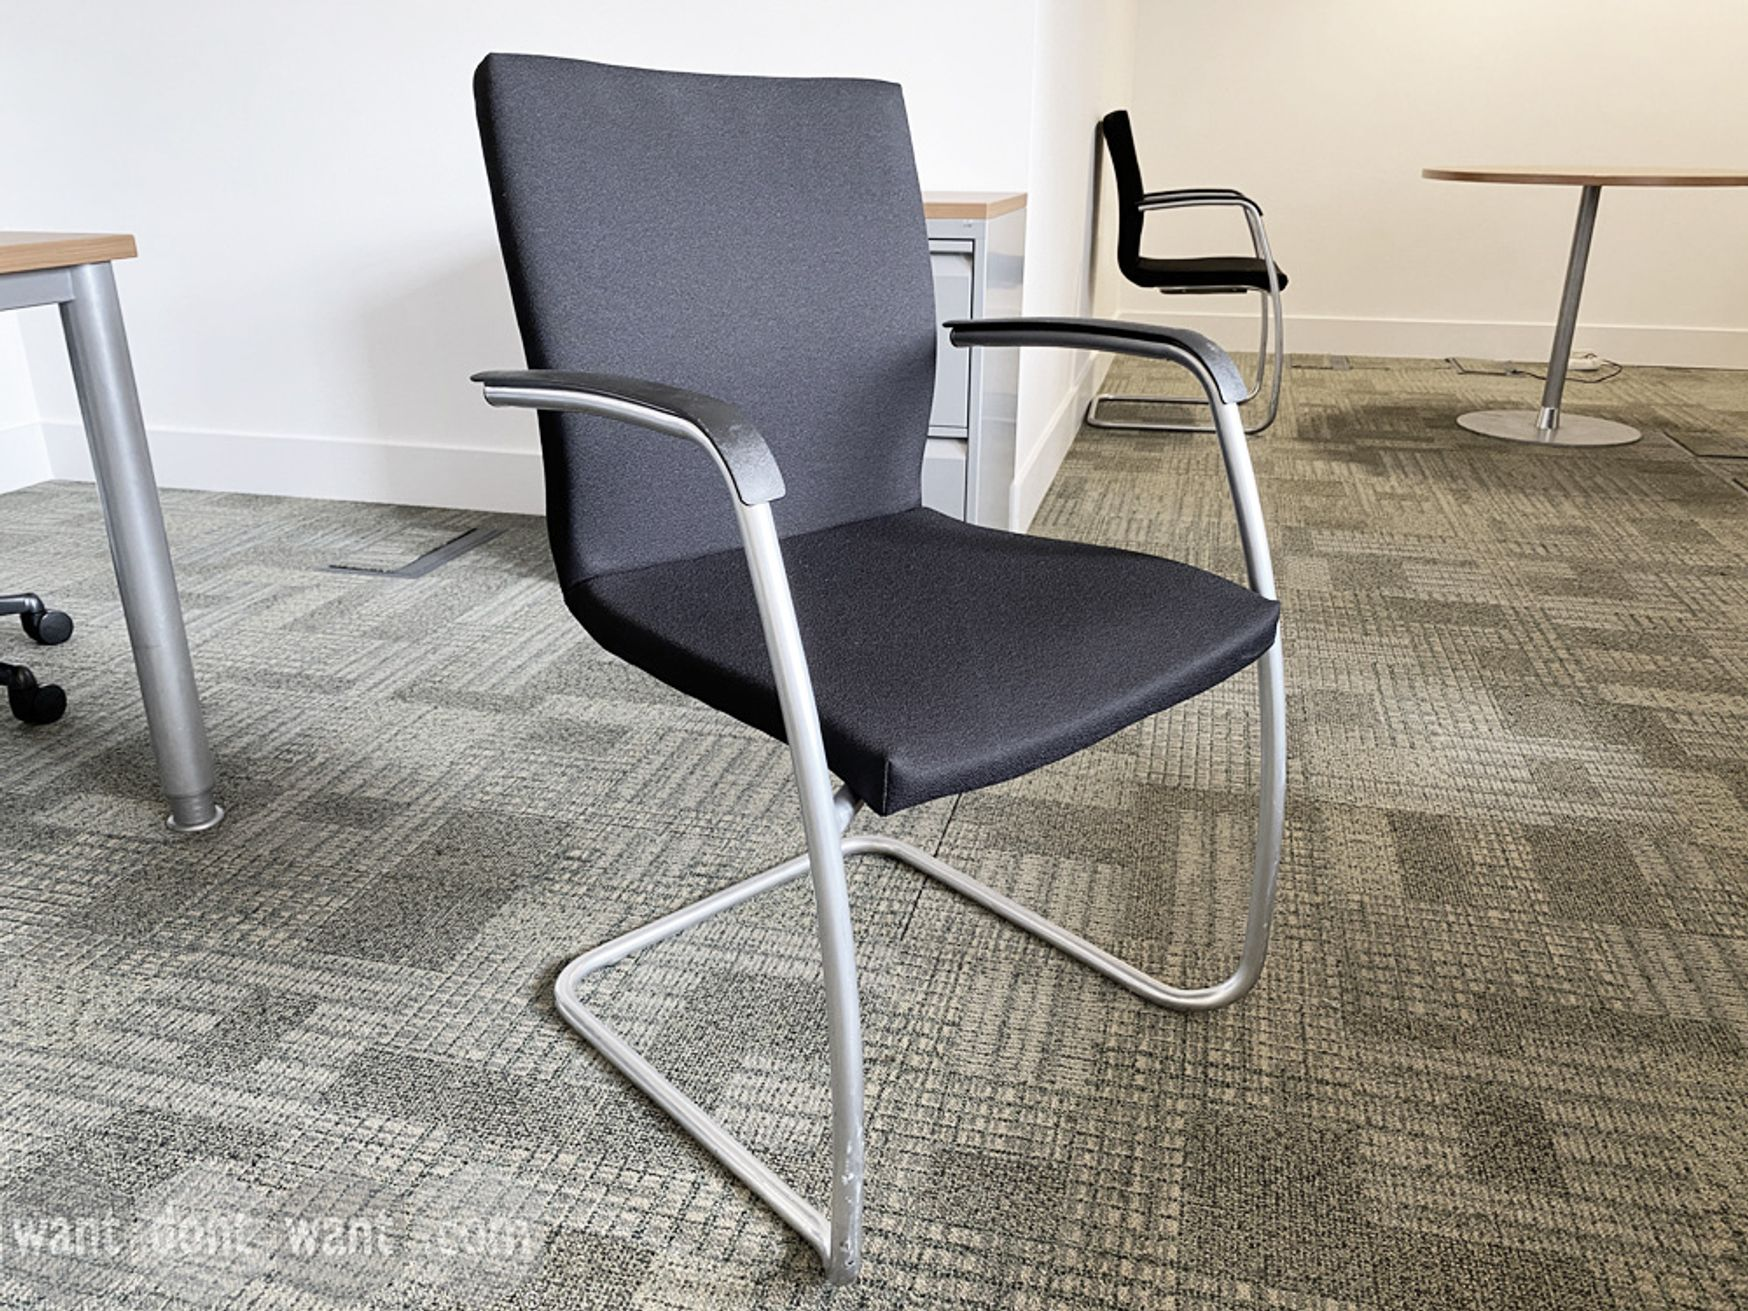 Used Connection 'Team' meeting chairs